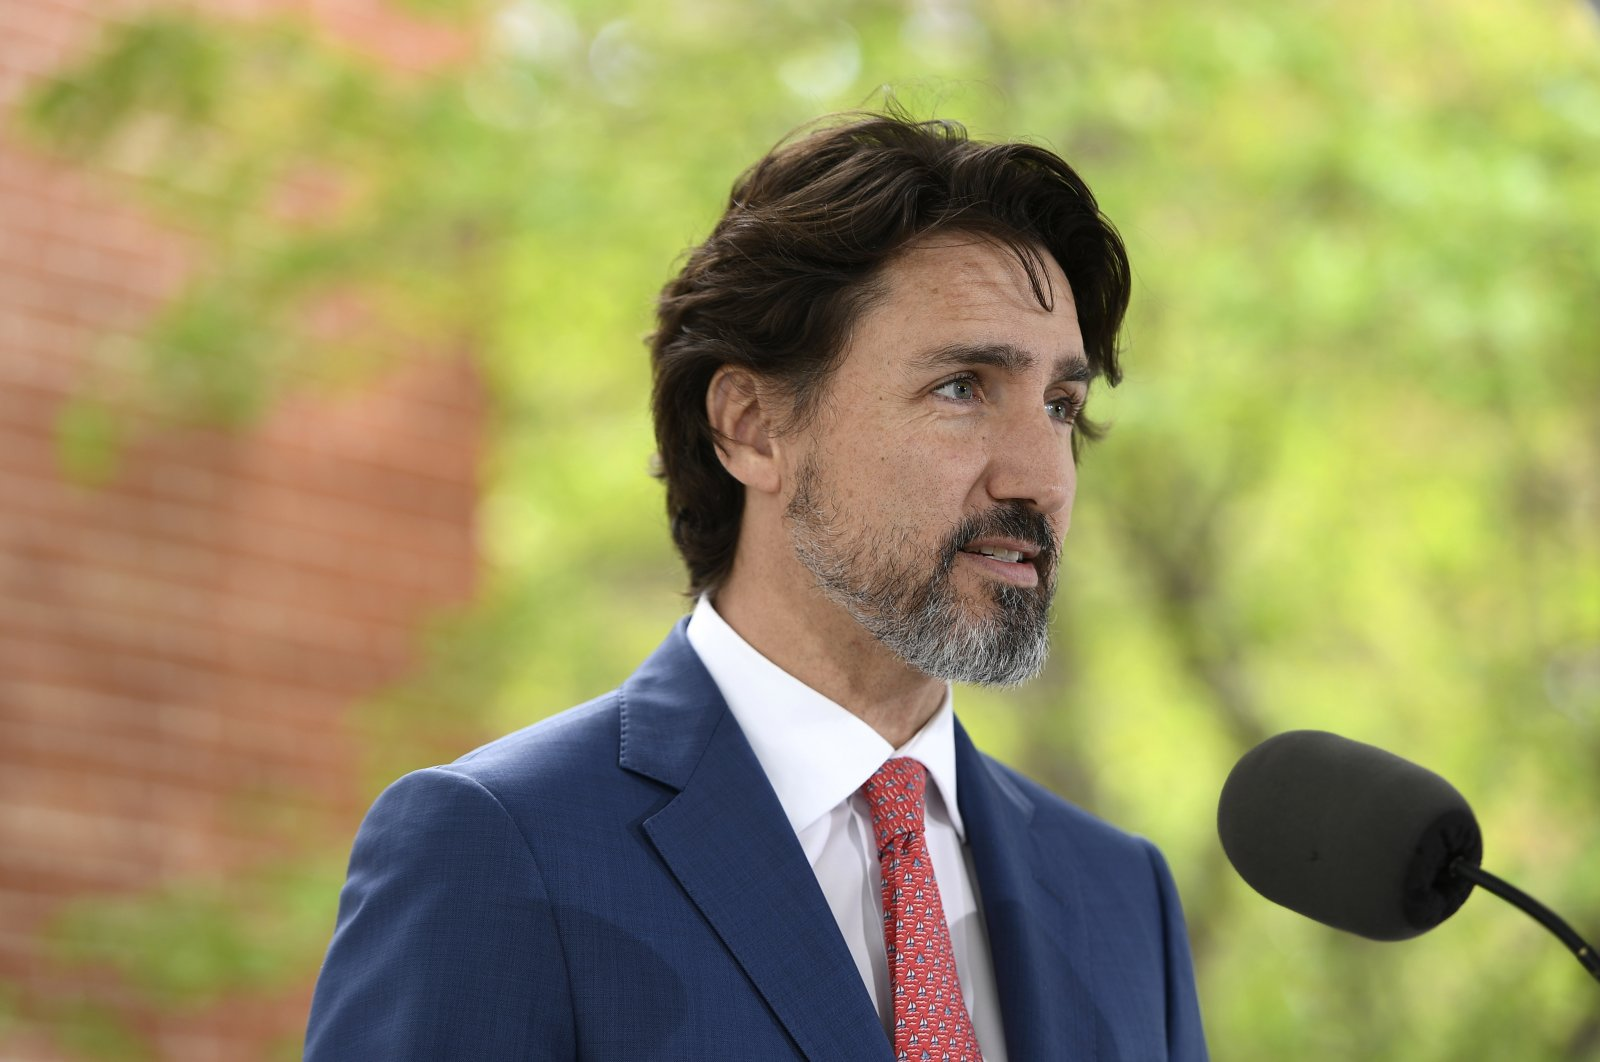 Canadian Prime Minister Justin Trudeau speaks during his daily news conference on the COVID-19 pandemic outside his residence at Rideau Cottage in Ottawa, Ontario, on Tuesday, May 19, 2020. (Justin Tang/The Canadian Press via AP)